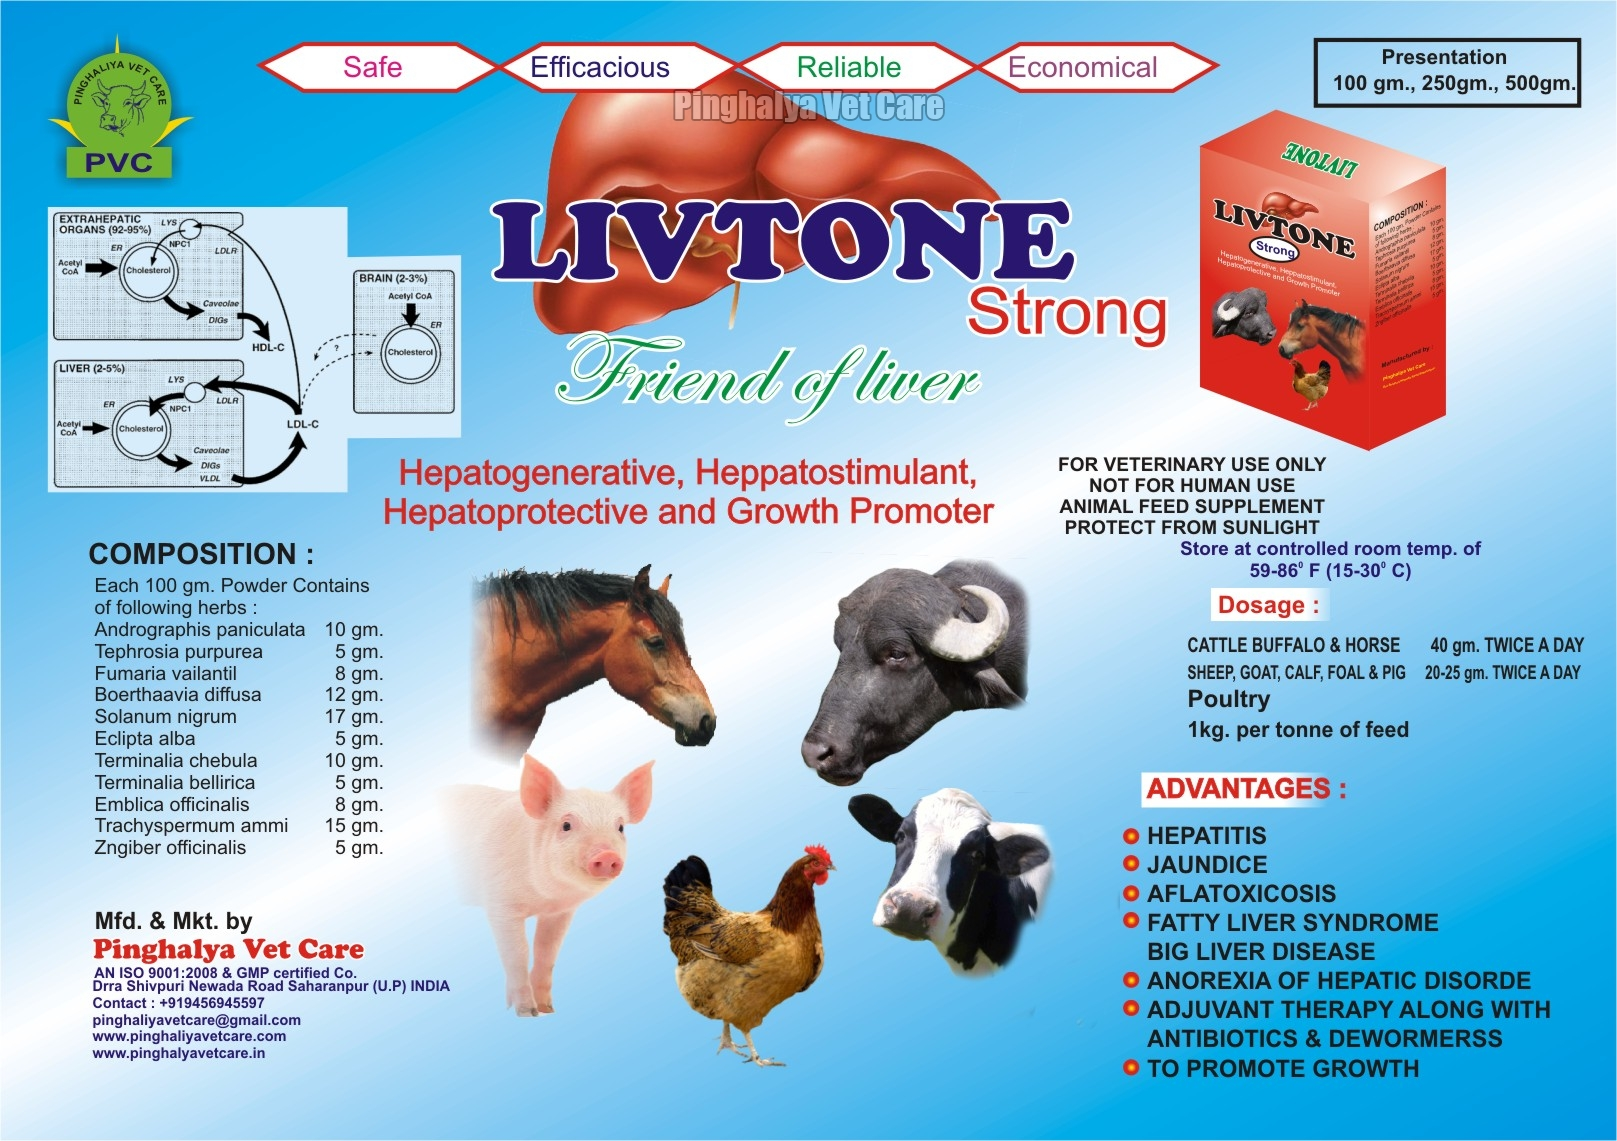 Livtone Strong Powder Feed Supplement